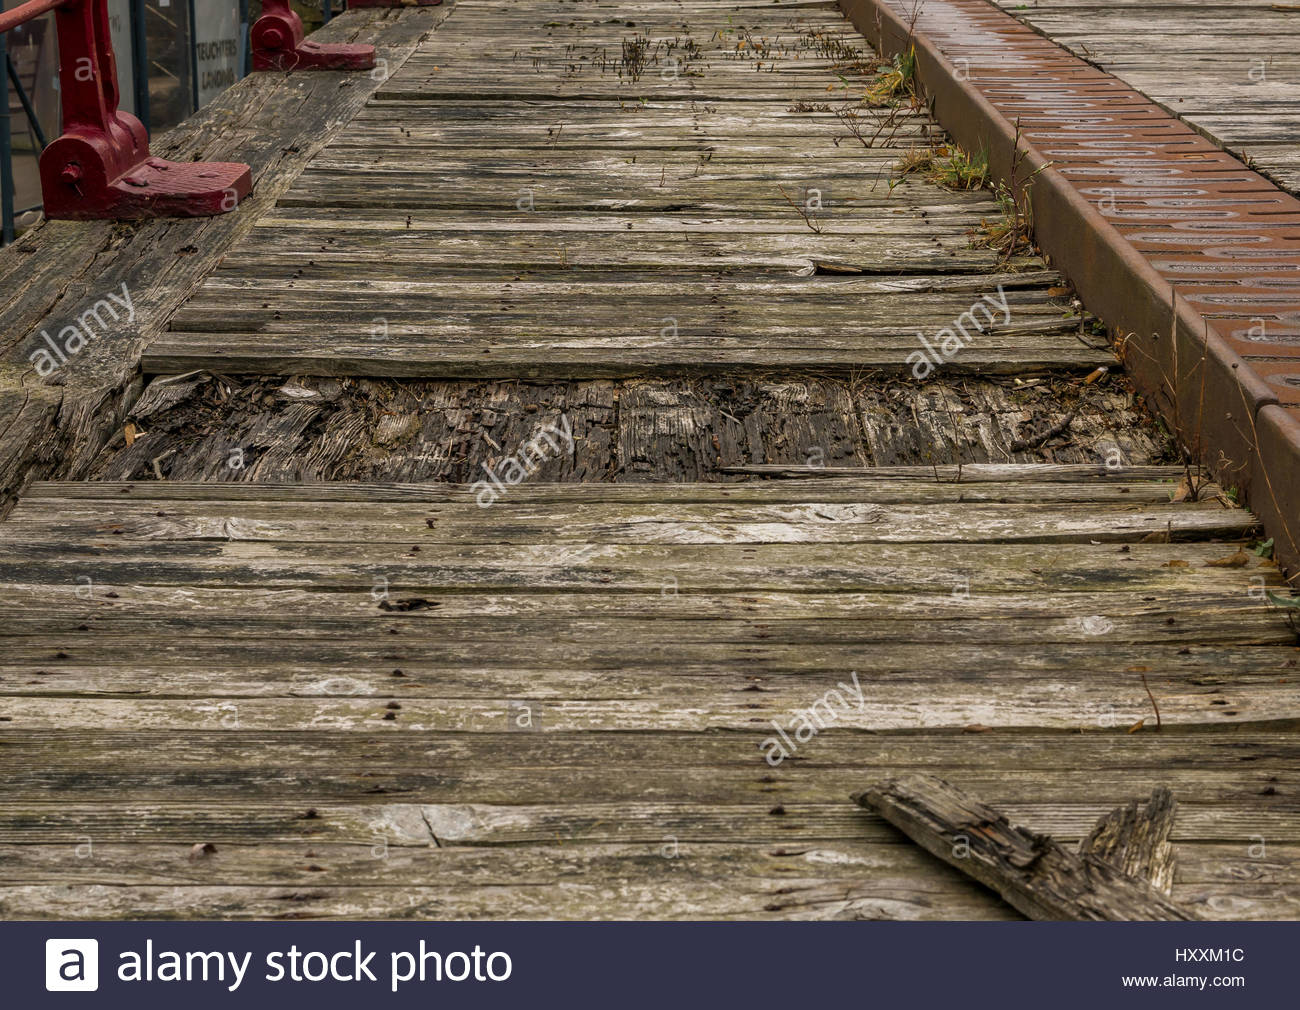 Close up of rotting broken wooden planks on old disused bridge, Leith, Edinburgh, Scotland, UK - Stock Image